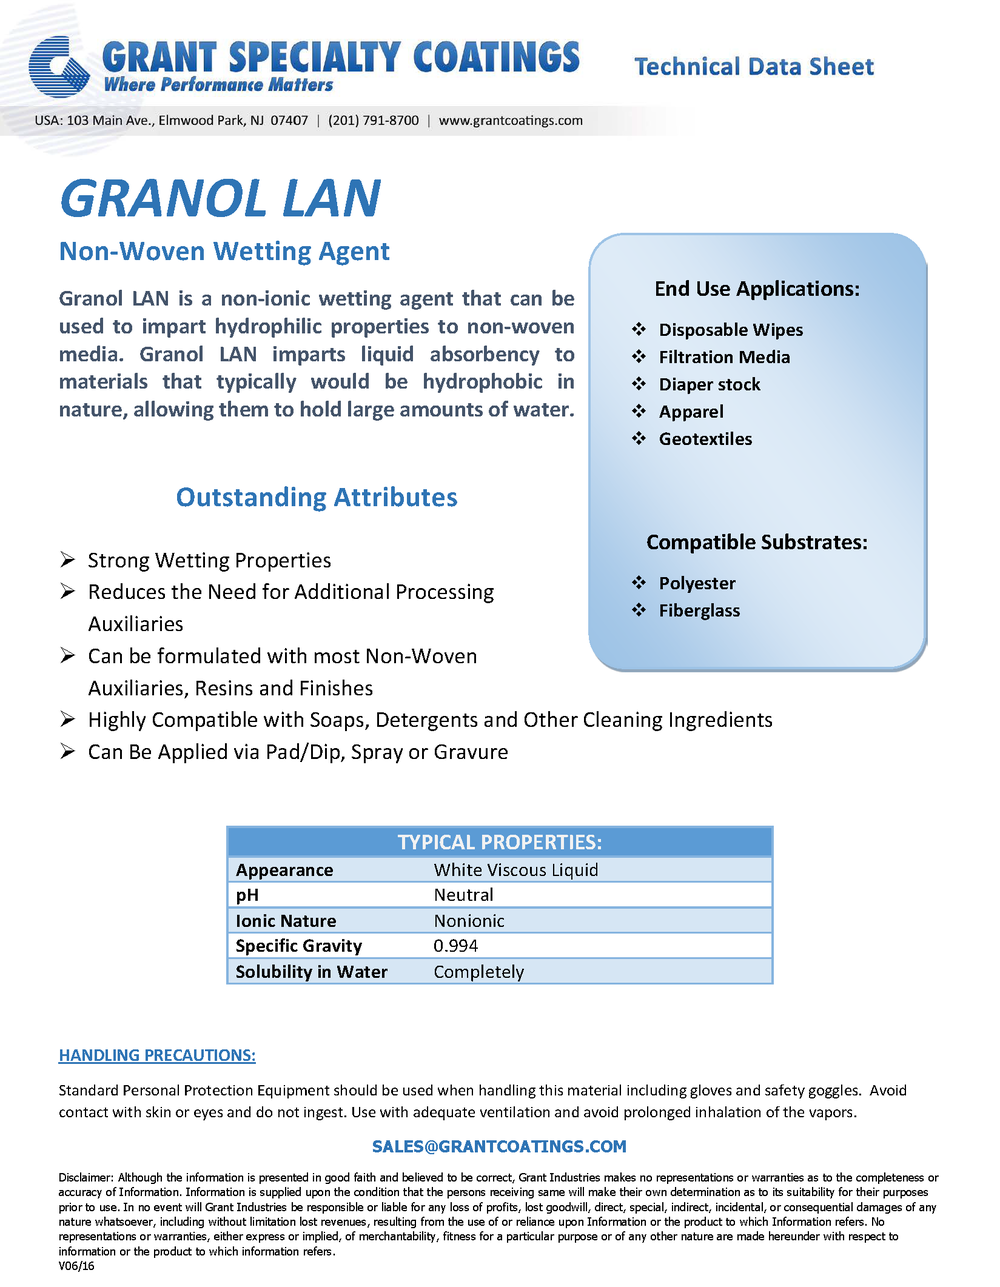 Non-Woven Wetting Agent Granol LAN